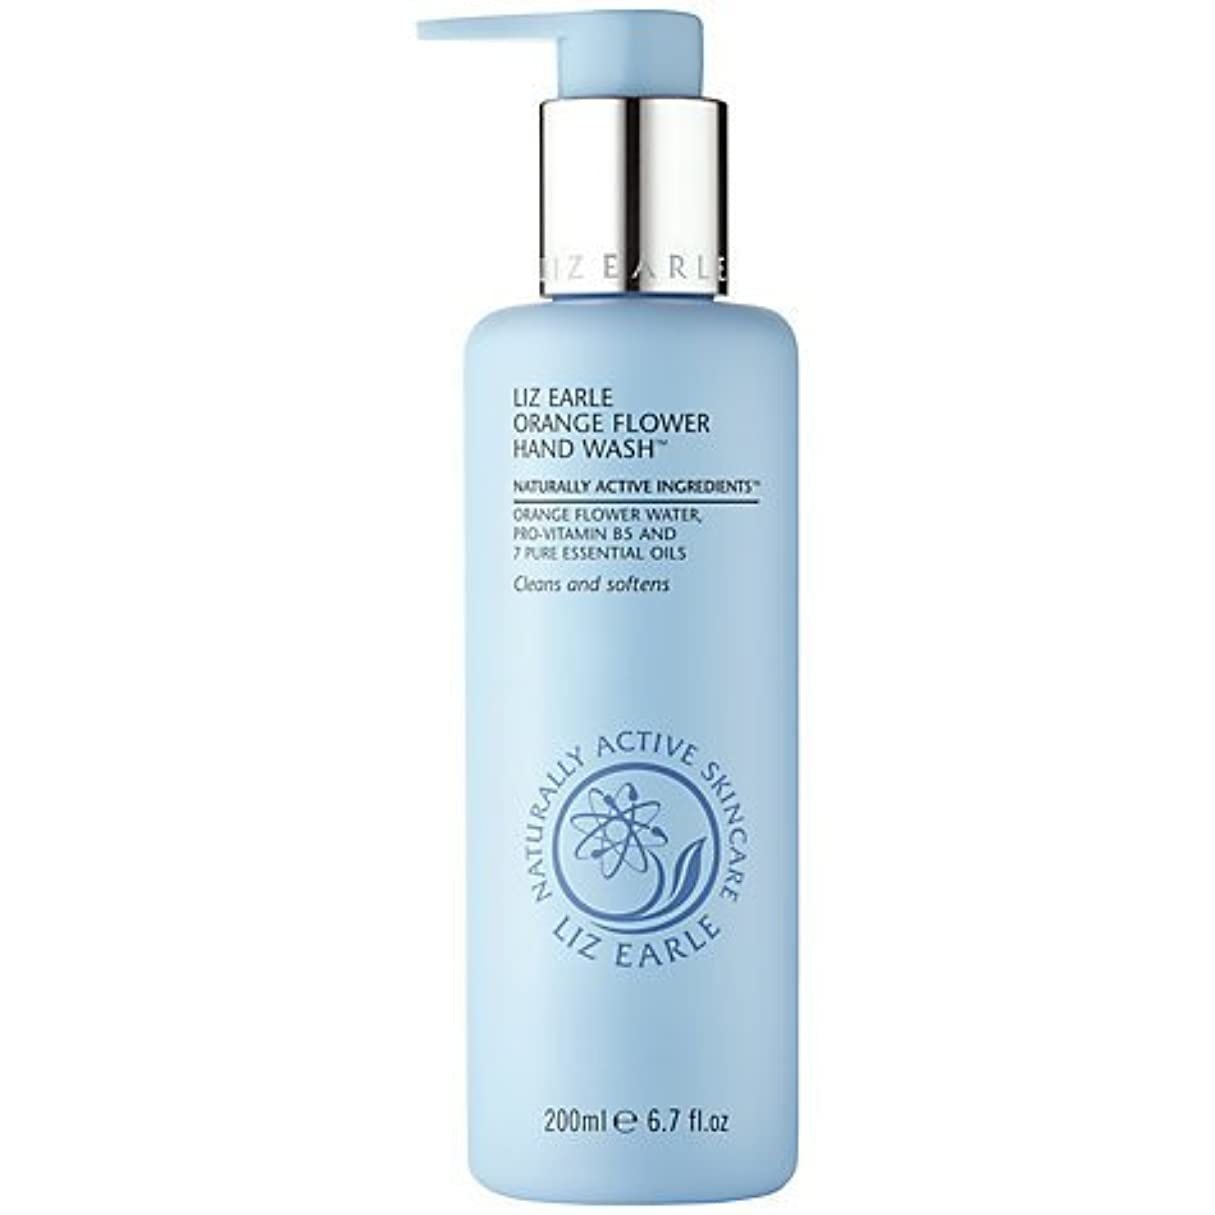 モール不信すりLiz Earle Orange Flower Hand Wash 200ml by Liz Earle [並行輸入品]